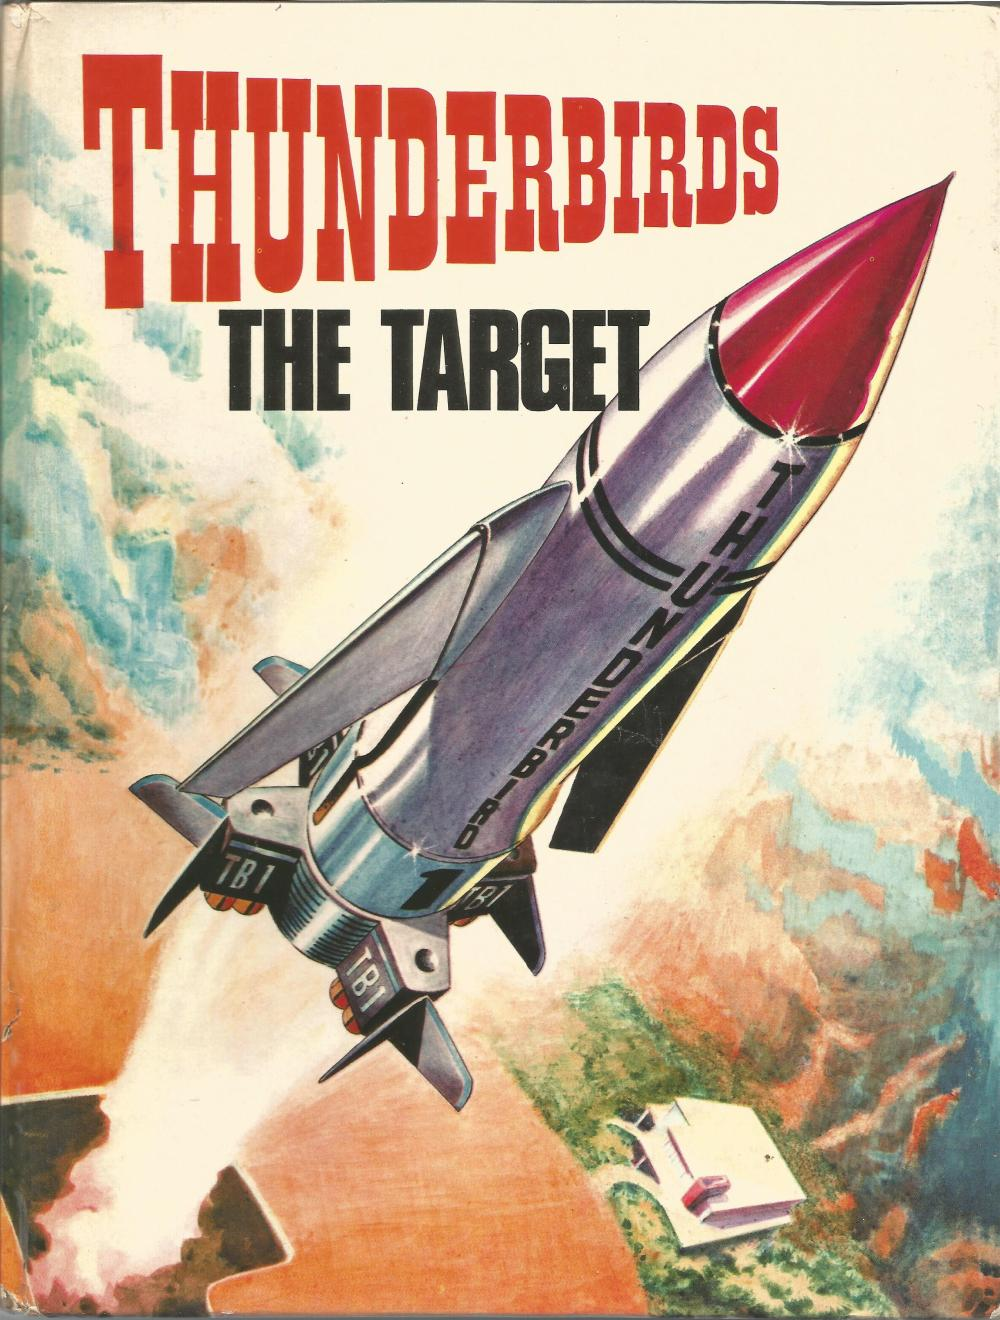 RARE Thunderbirds 1966 Vintage Annual The Target in good condition. Early publication becoming